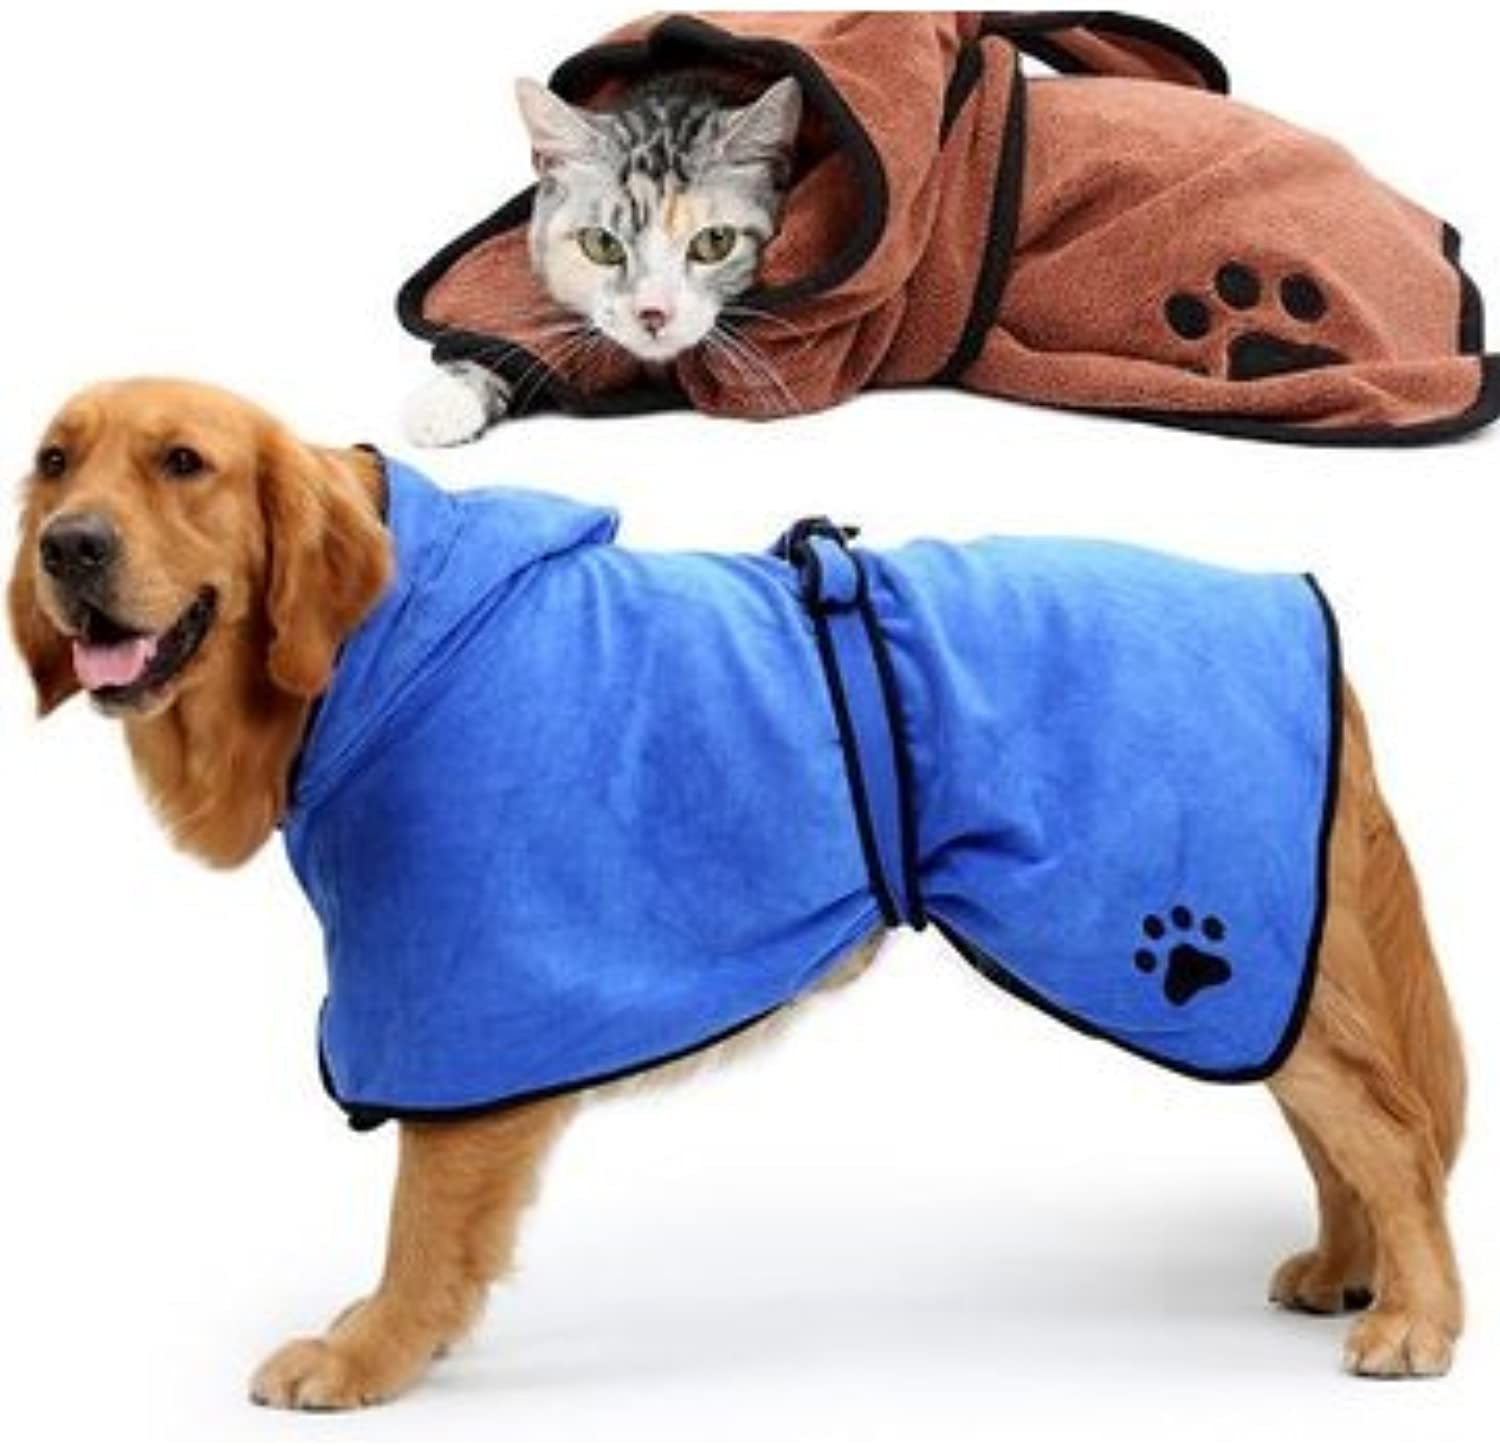 Dog Dog Grooming  Dog Bathrobe Warm Dog Clothes Absorbent Pet Drying Towel Embroidery Paw Cat Hood Pet Bath Towel  L  1 x Pet Bath Towel